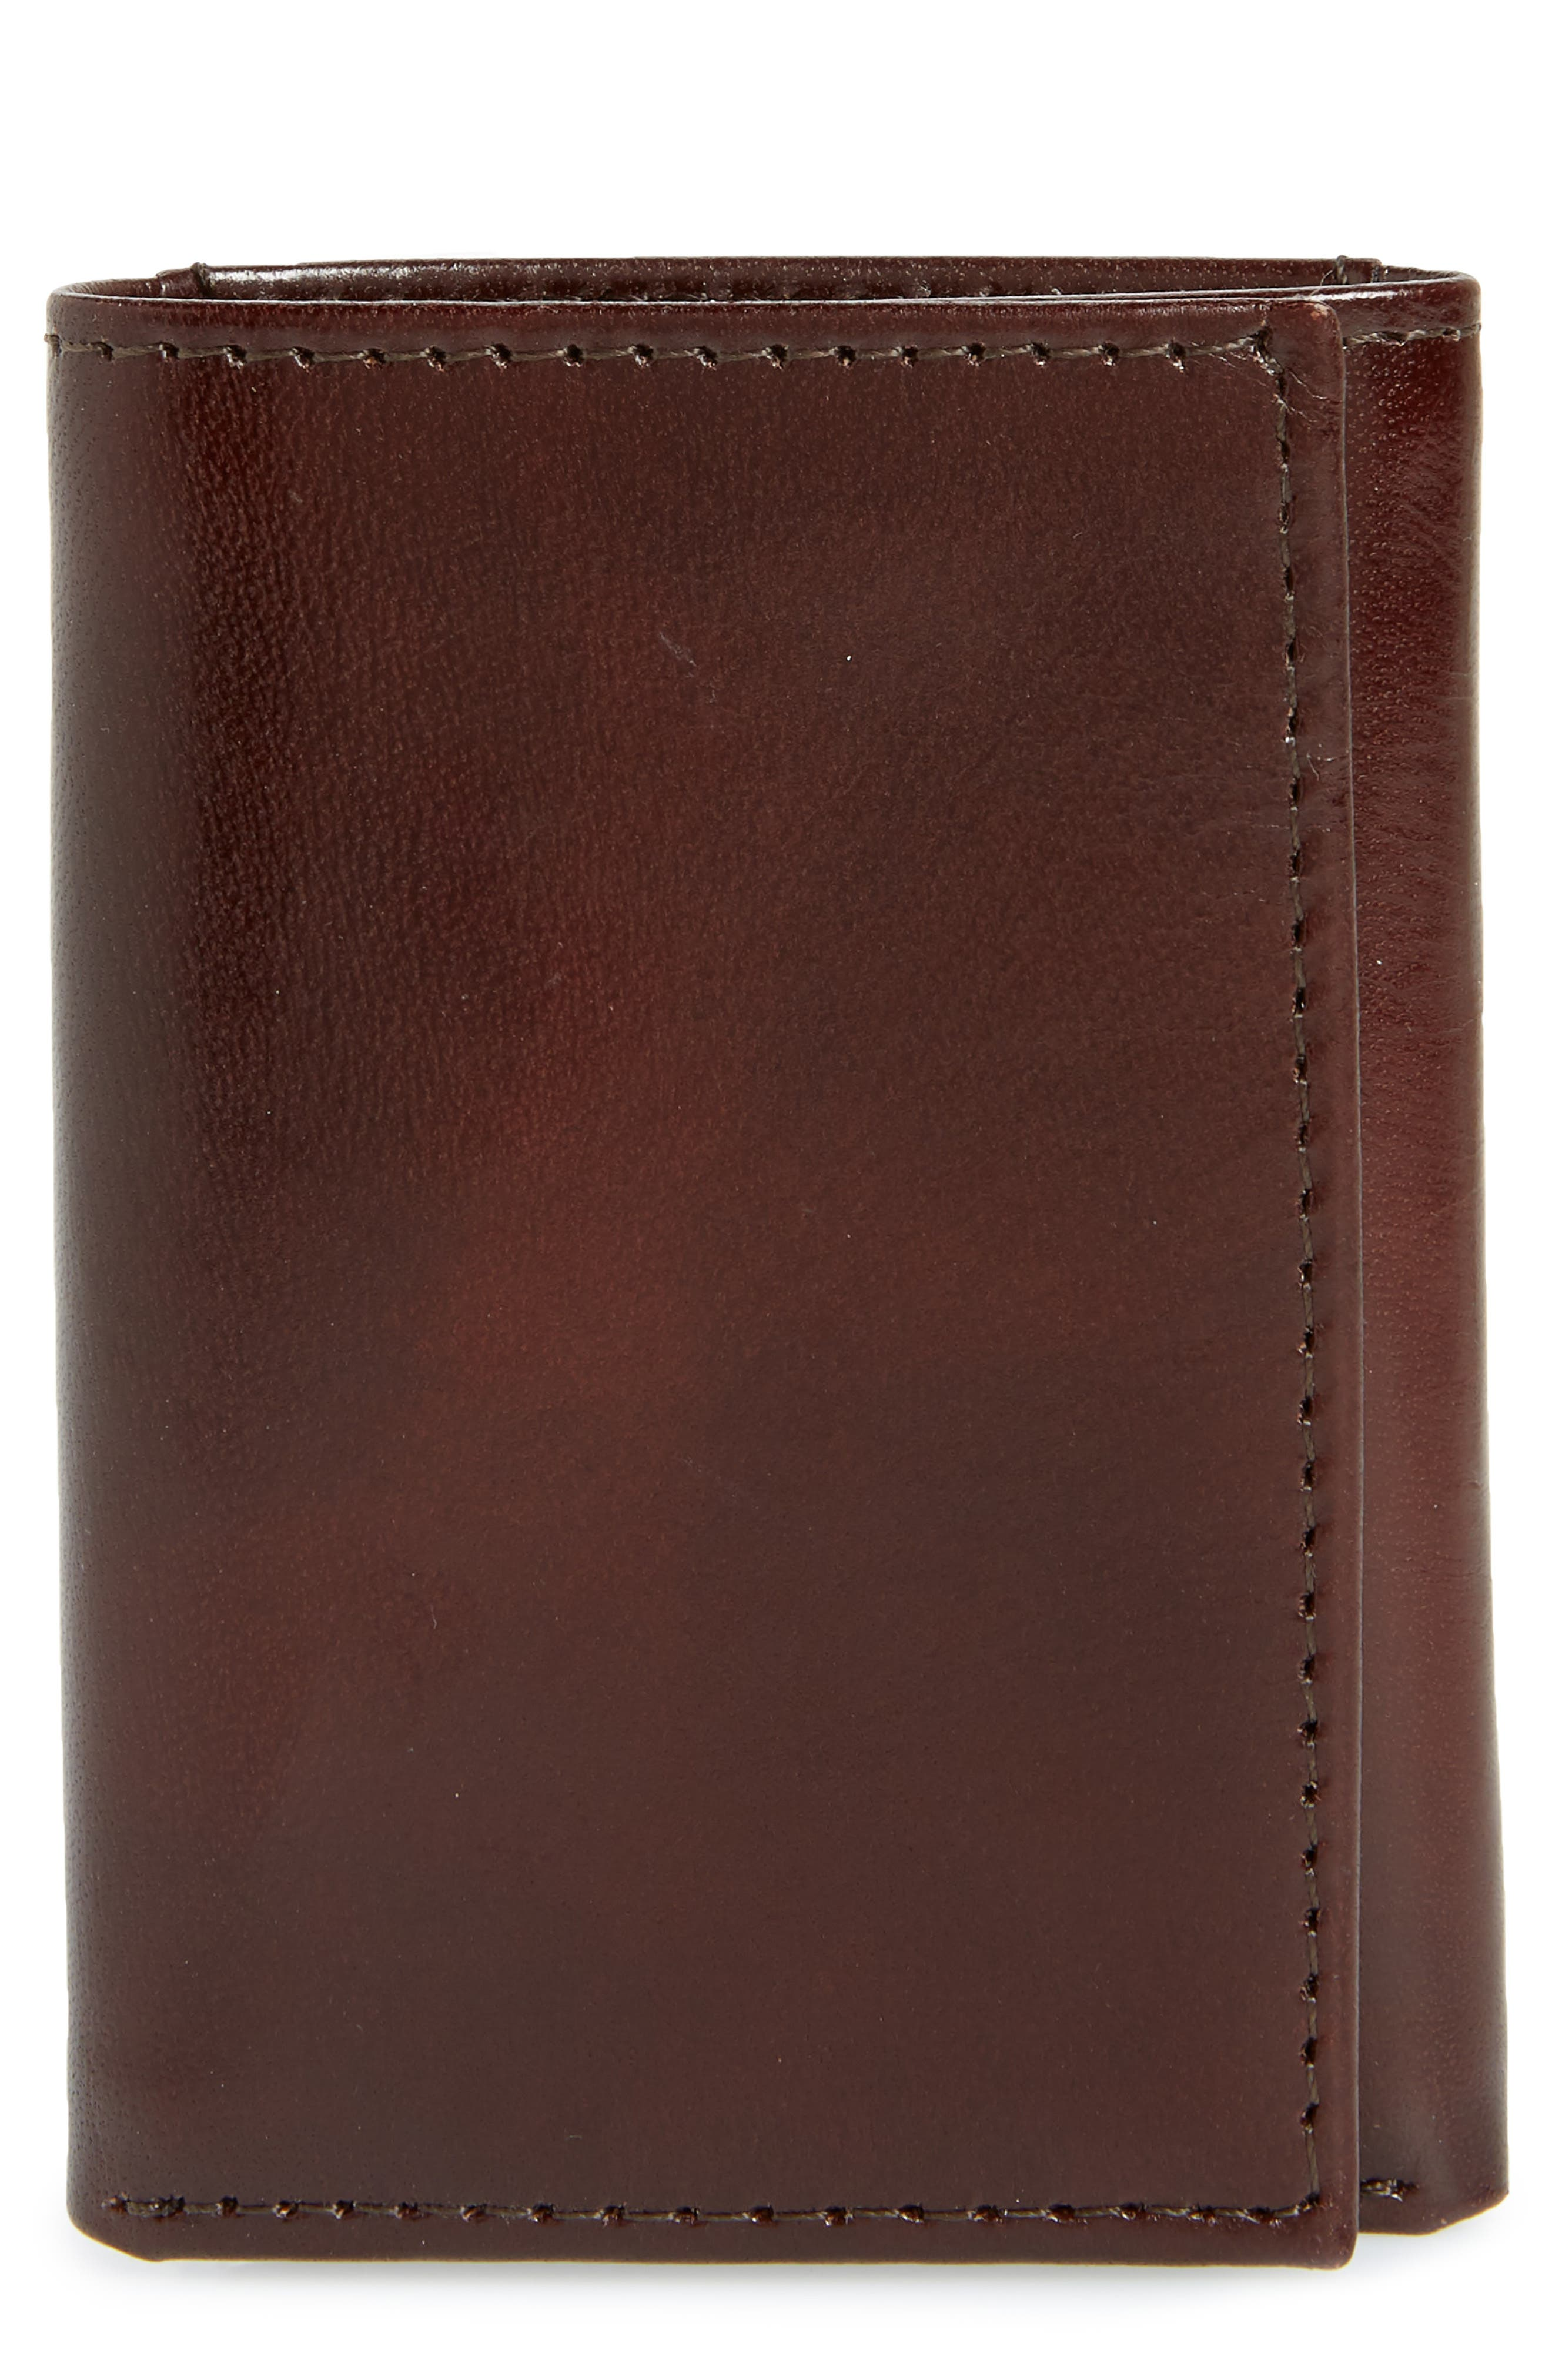 Fine leather defines a smart, trifold wallet featuring a well-organized interior for utility and style. Style Name: Johnston & Murphy Leather Wallet. Style Number: 5338411. Available in stores.